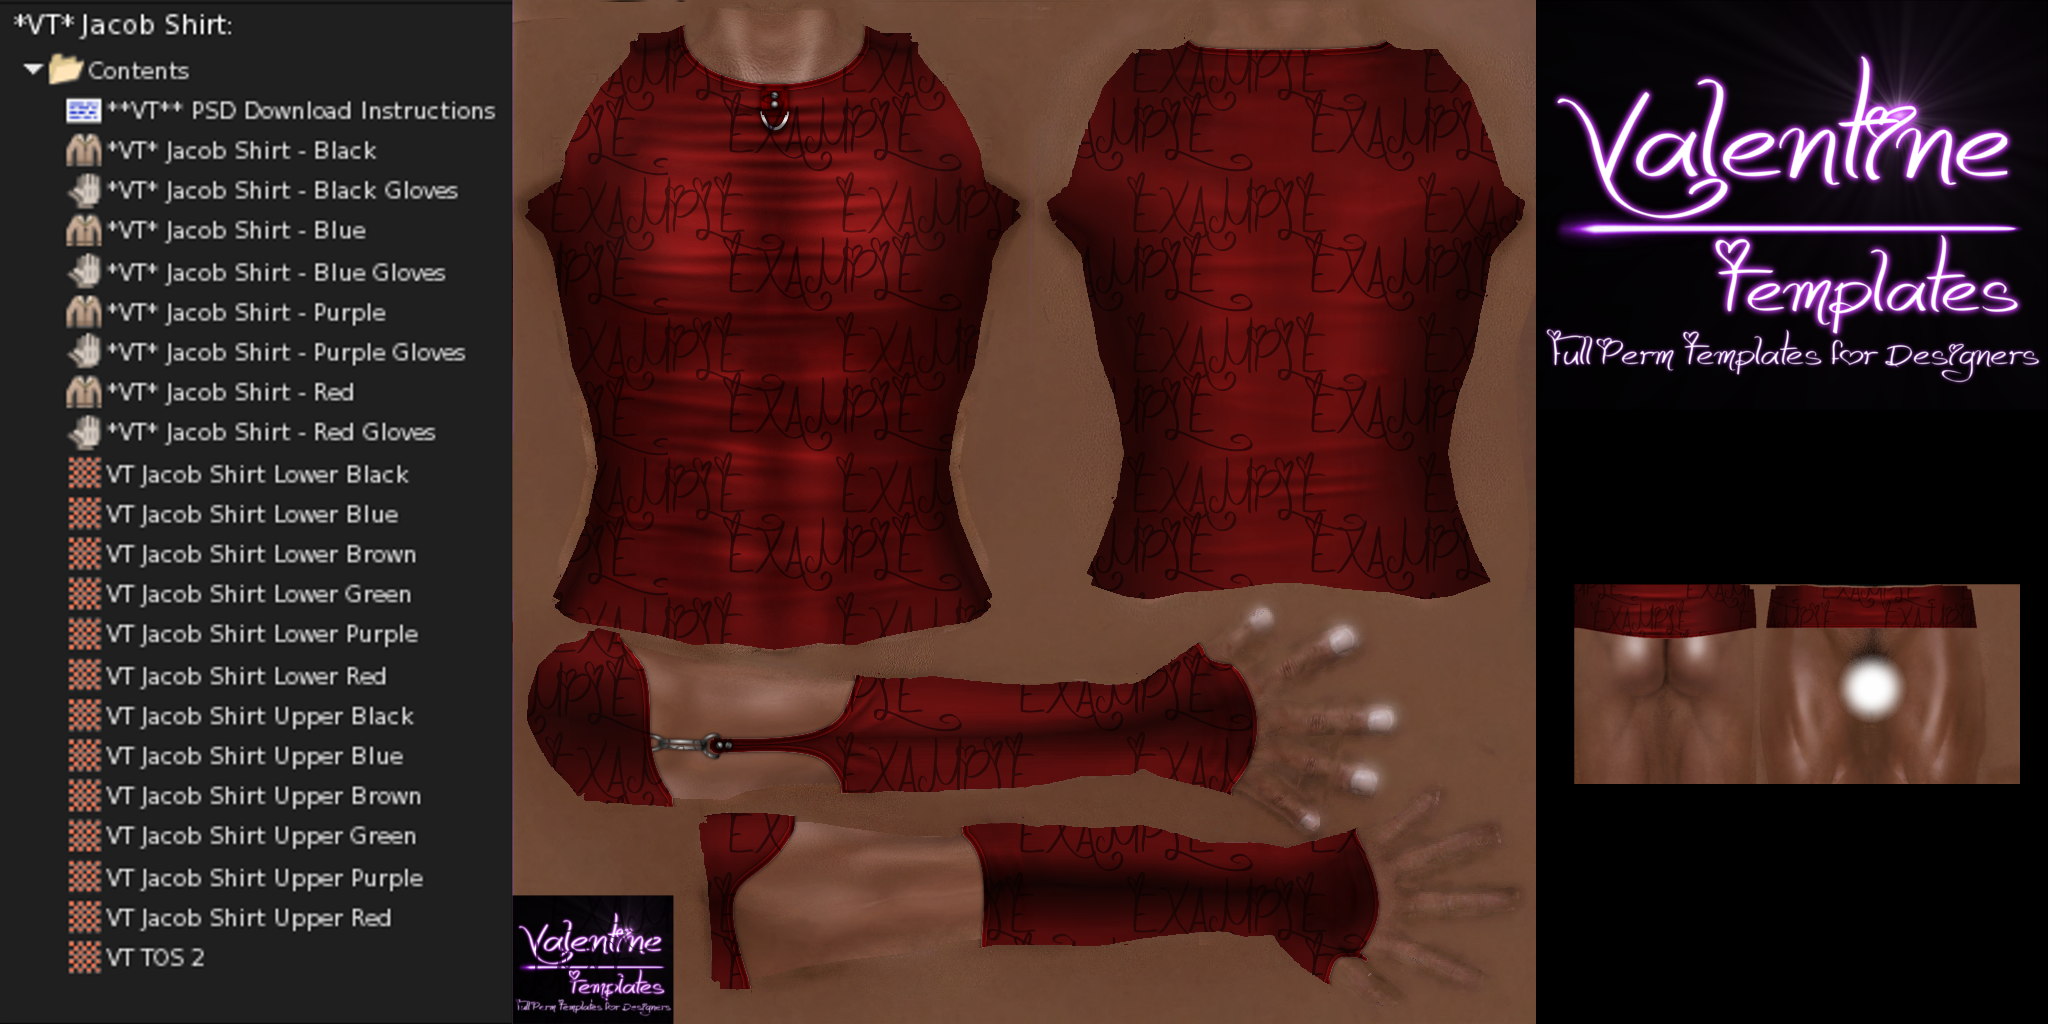 Second life clothing design templates blogssharp for Second life templates for gimp